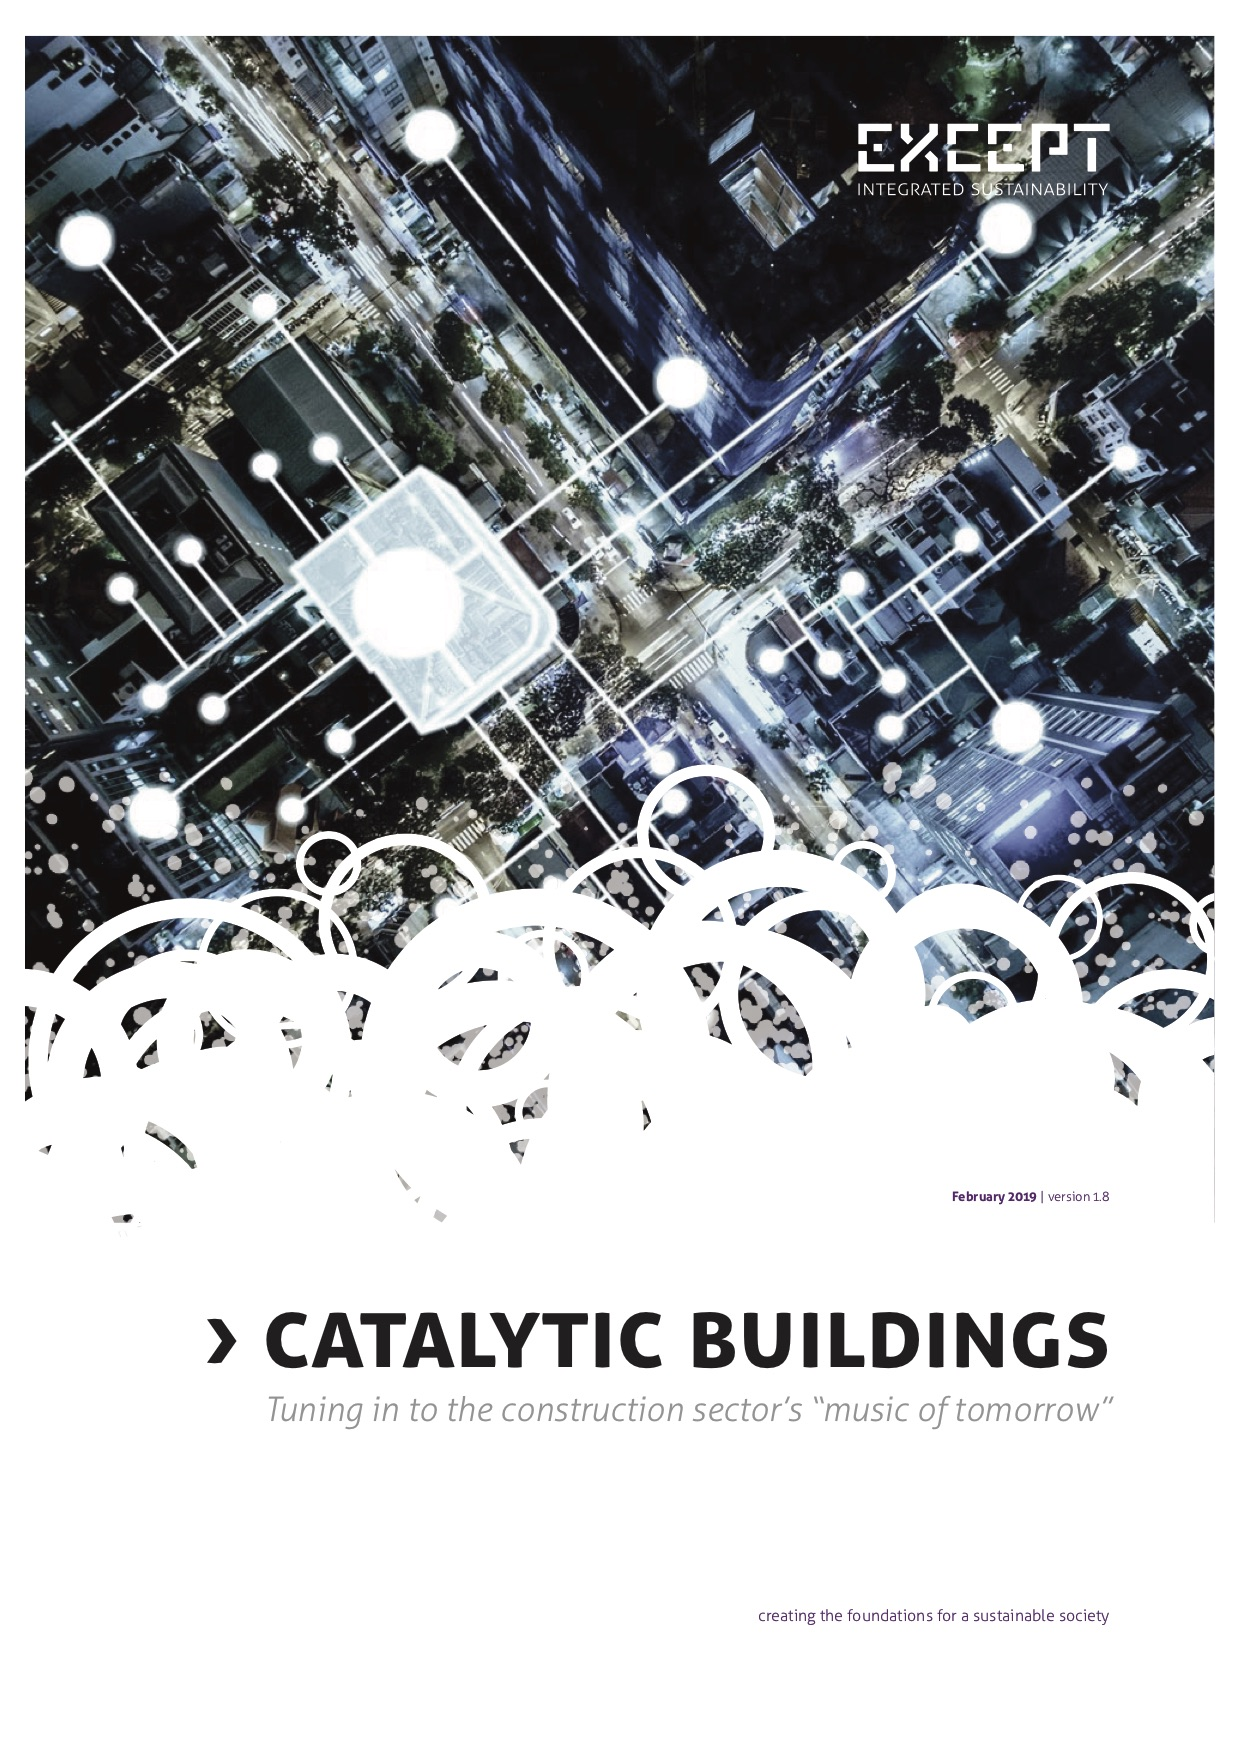 Catalytic Buildings Whitepaper